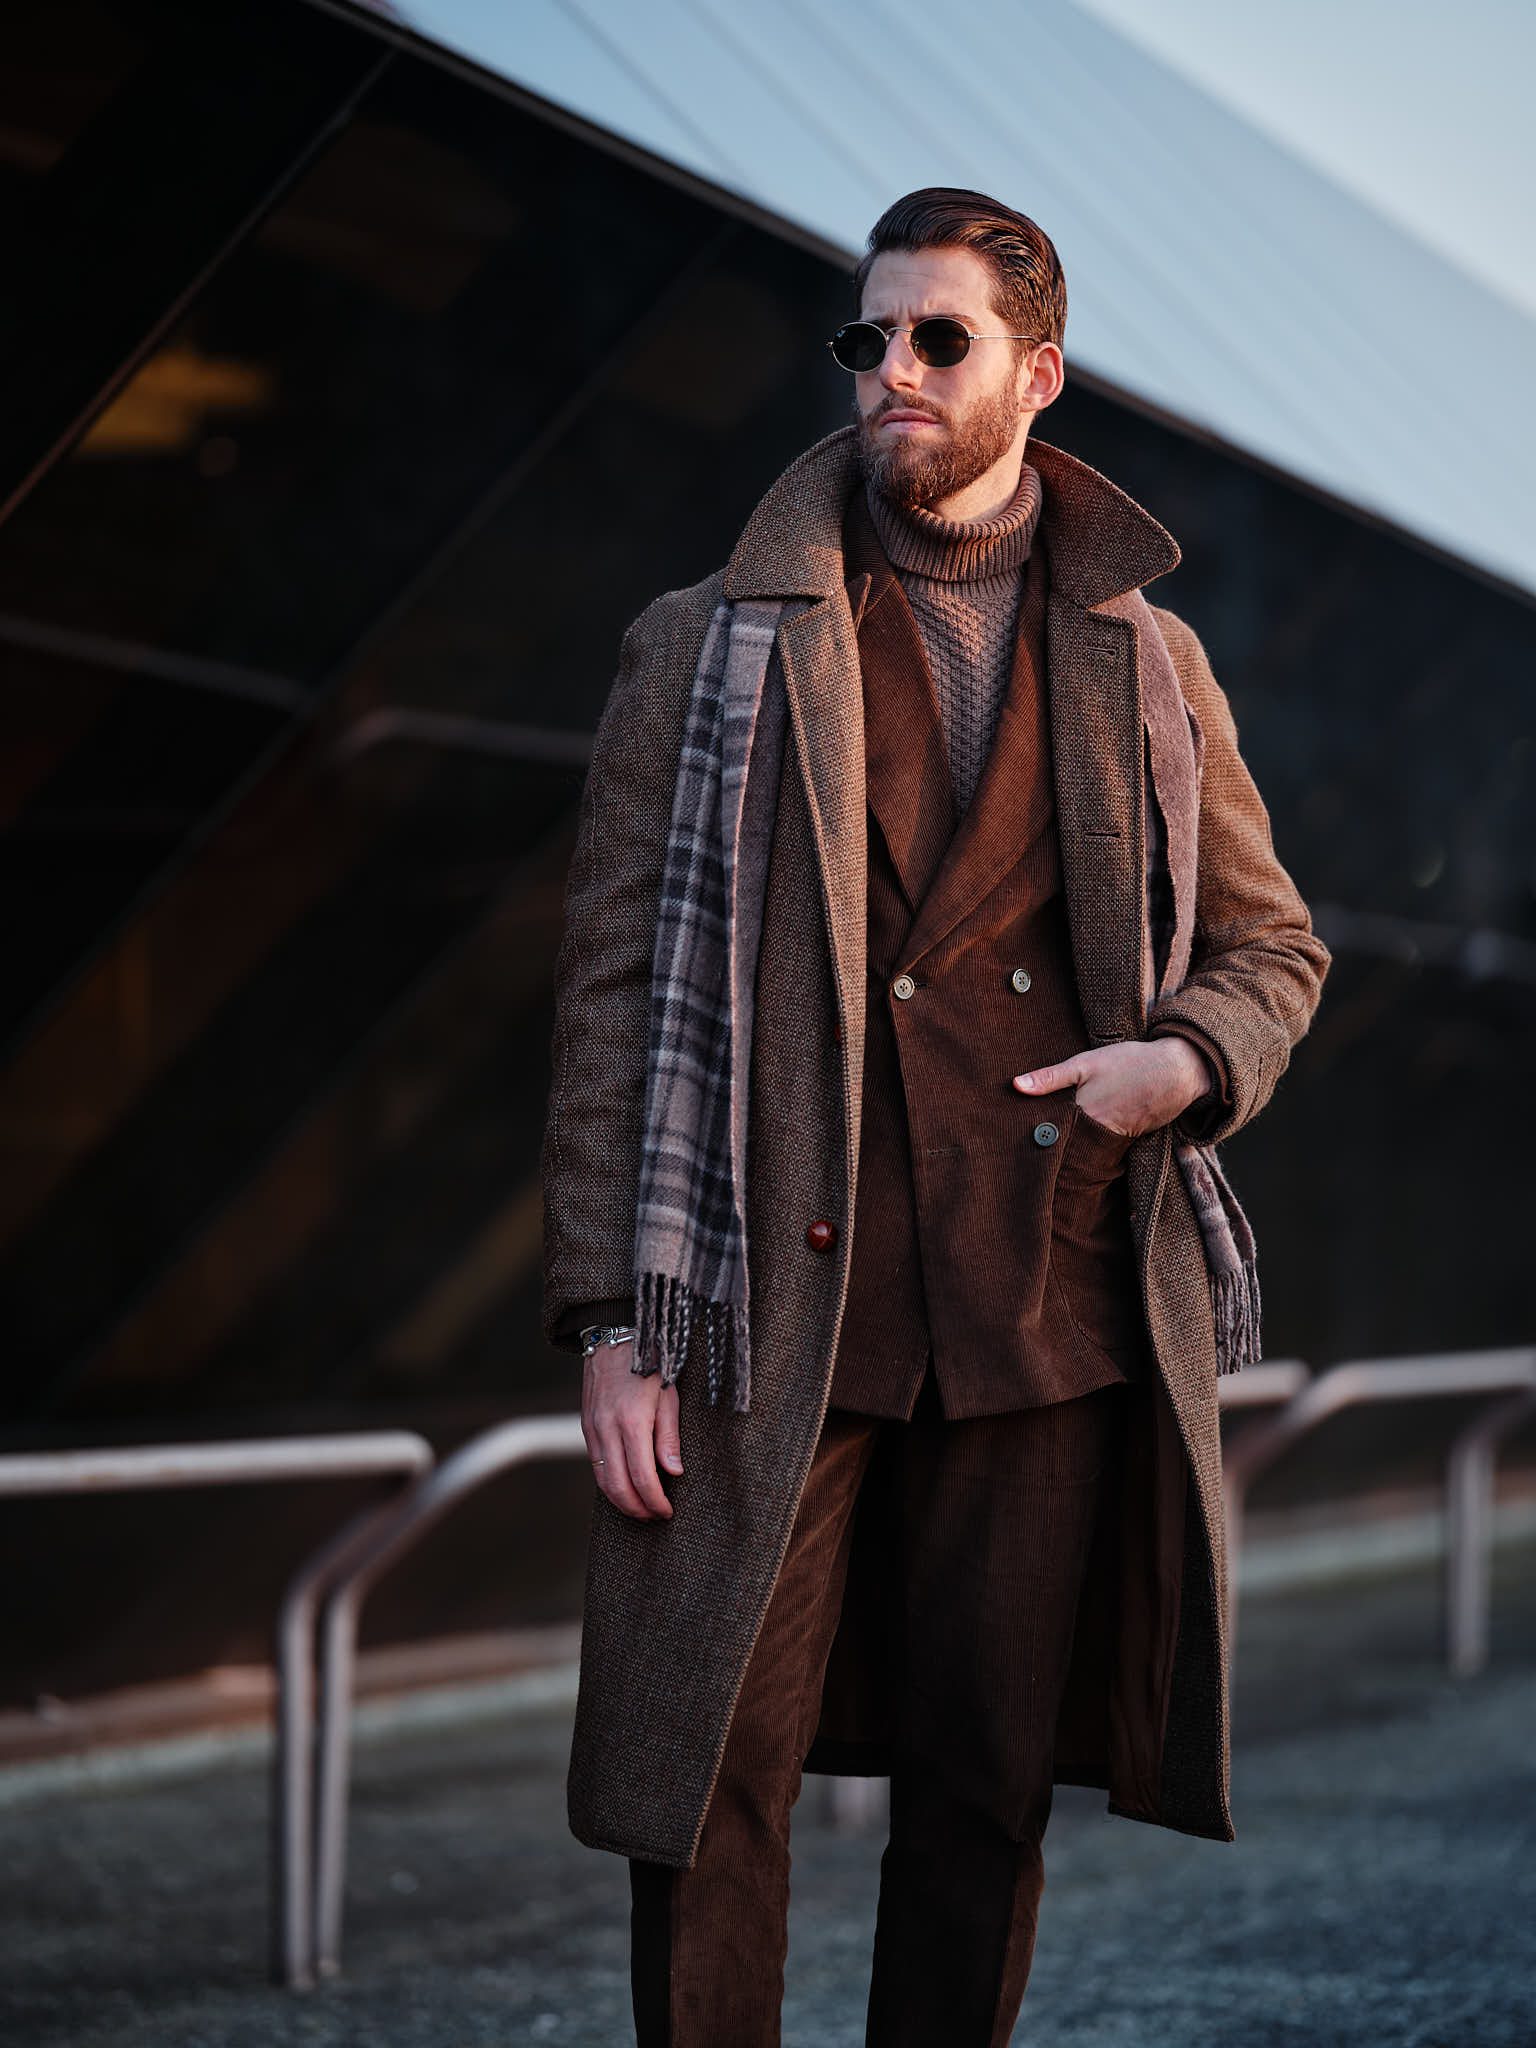 Photos from Pitti Immagine Uomo in Florence, January 2020